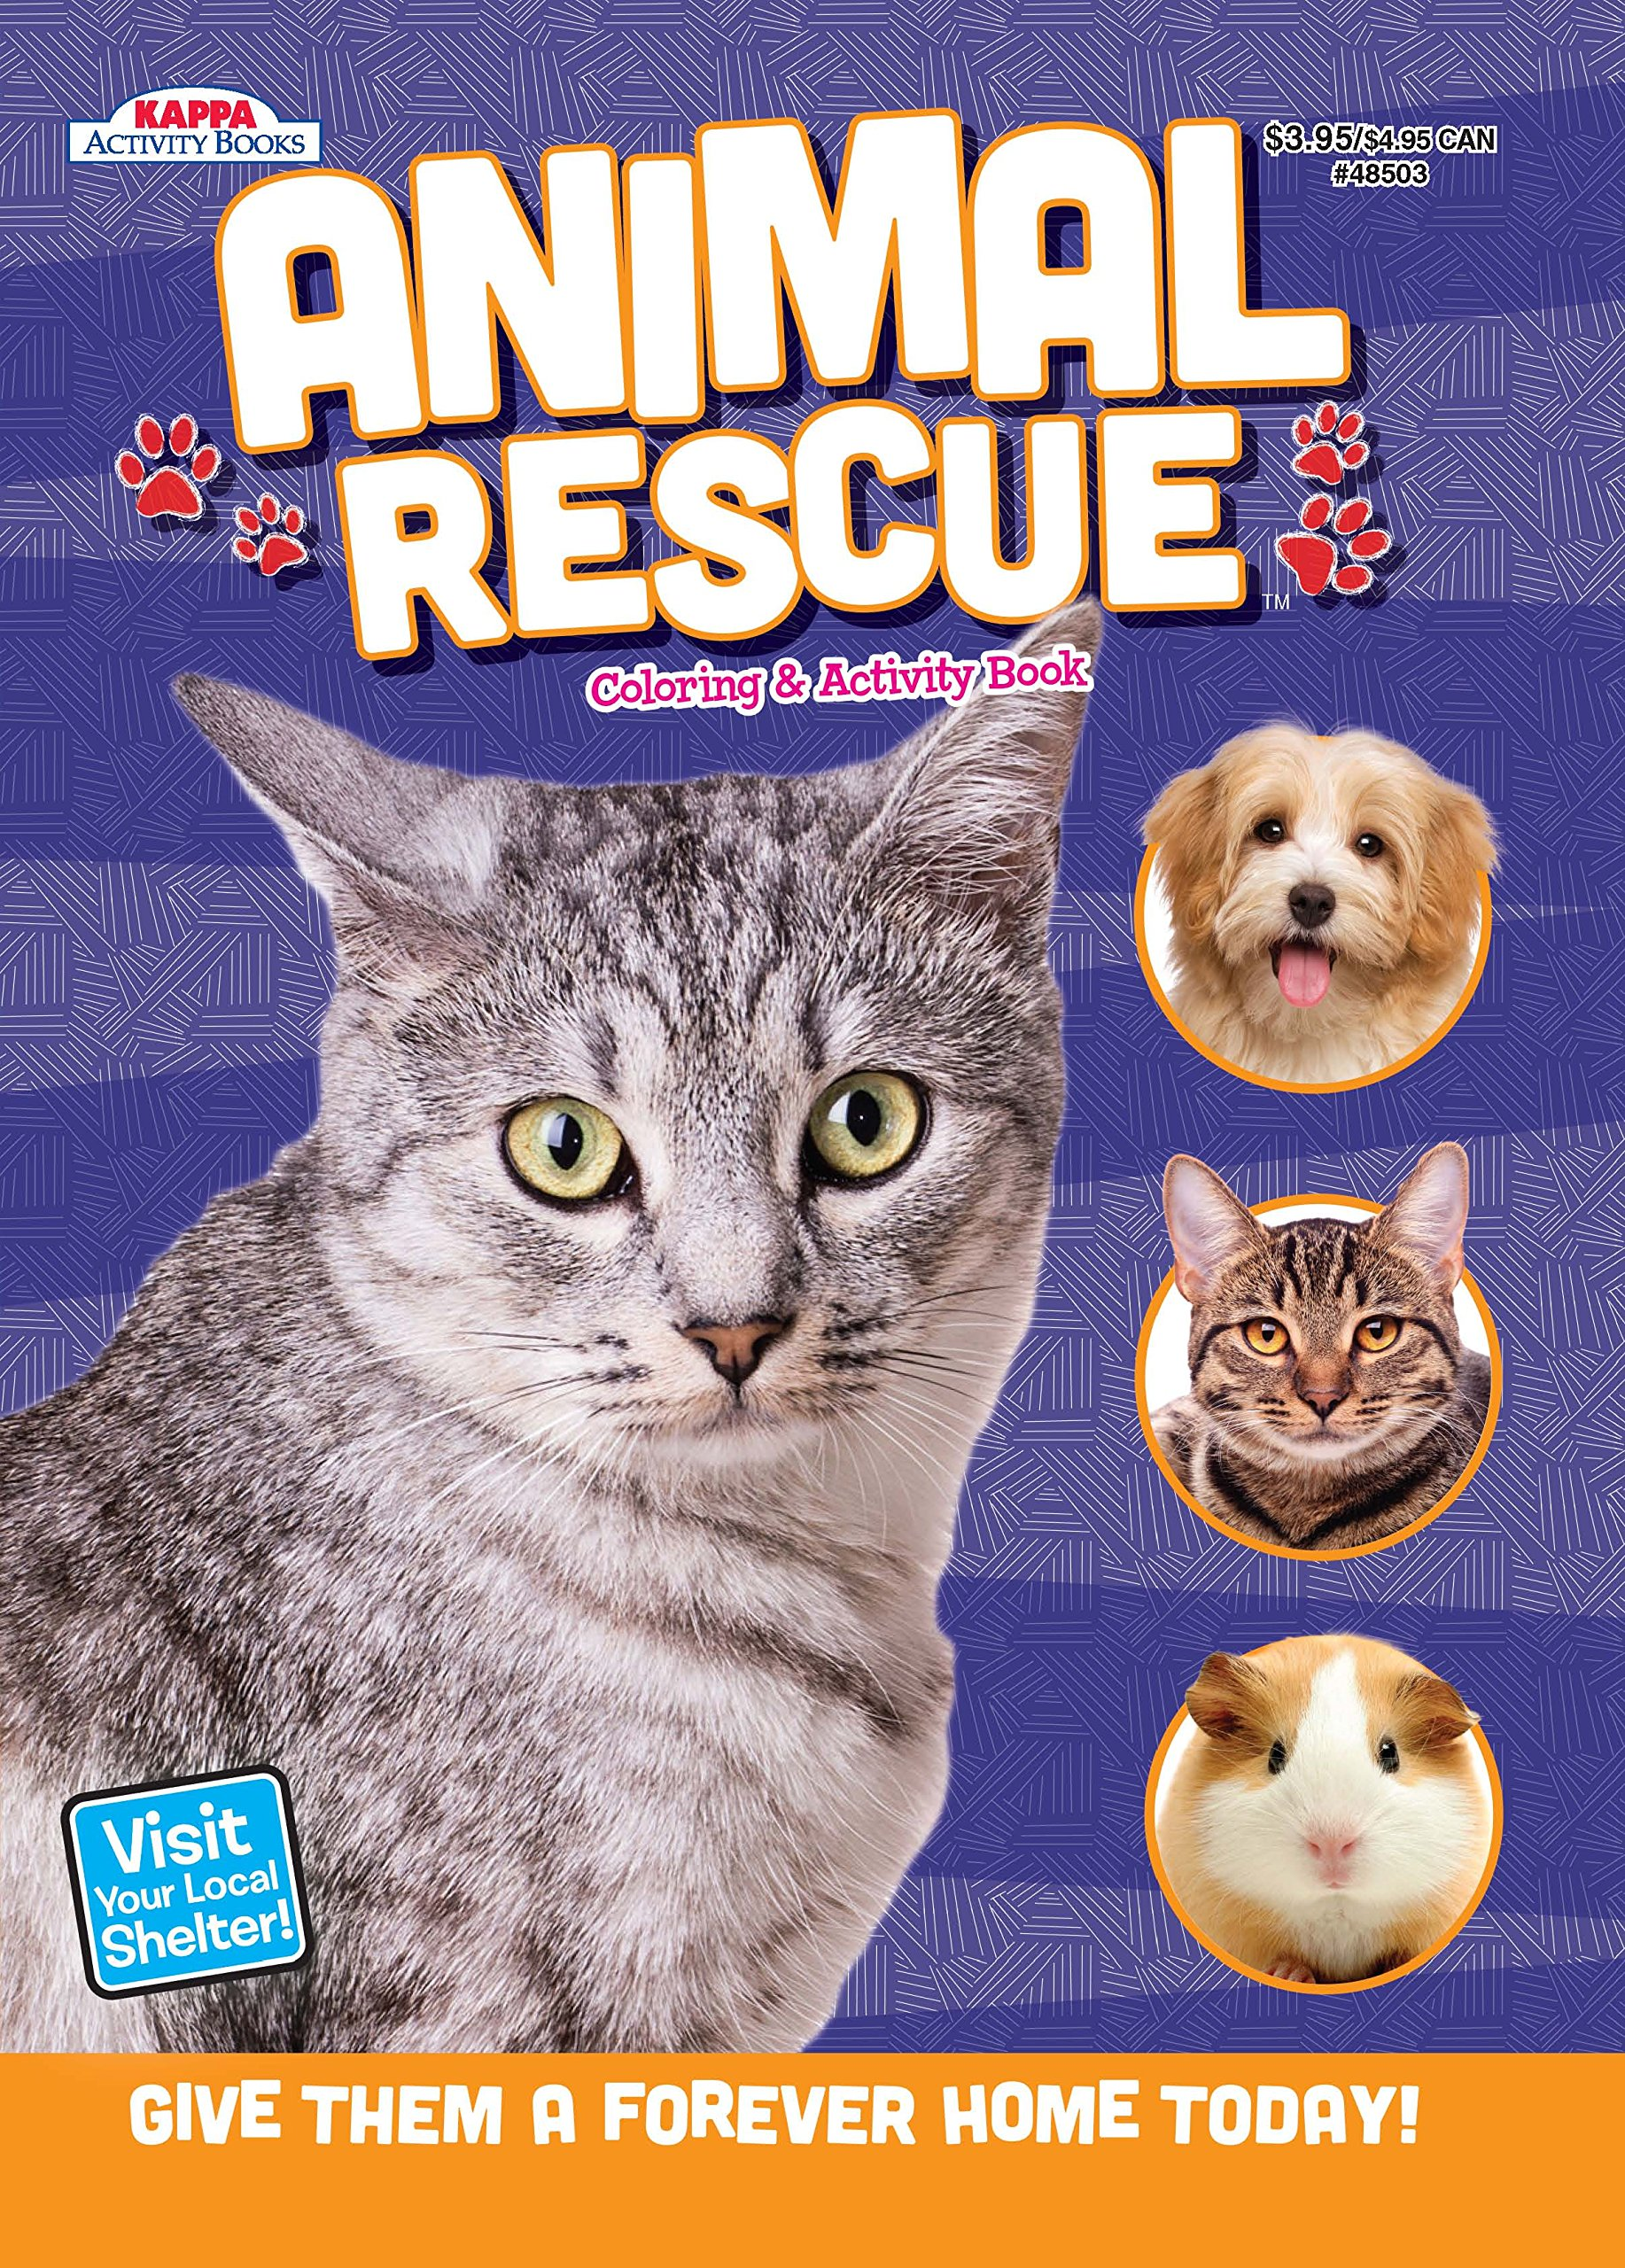 Animal Rescue Coloring Activity Book